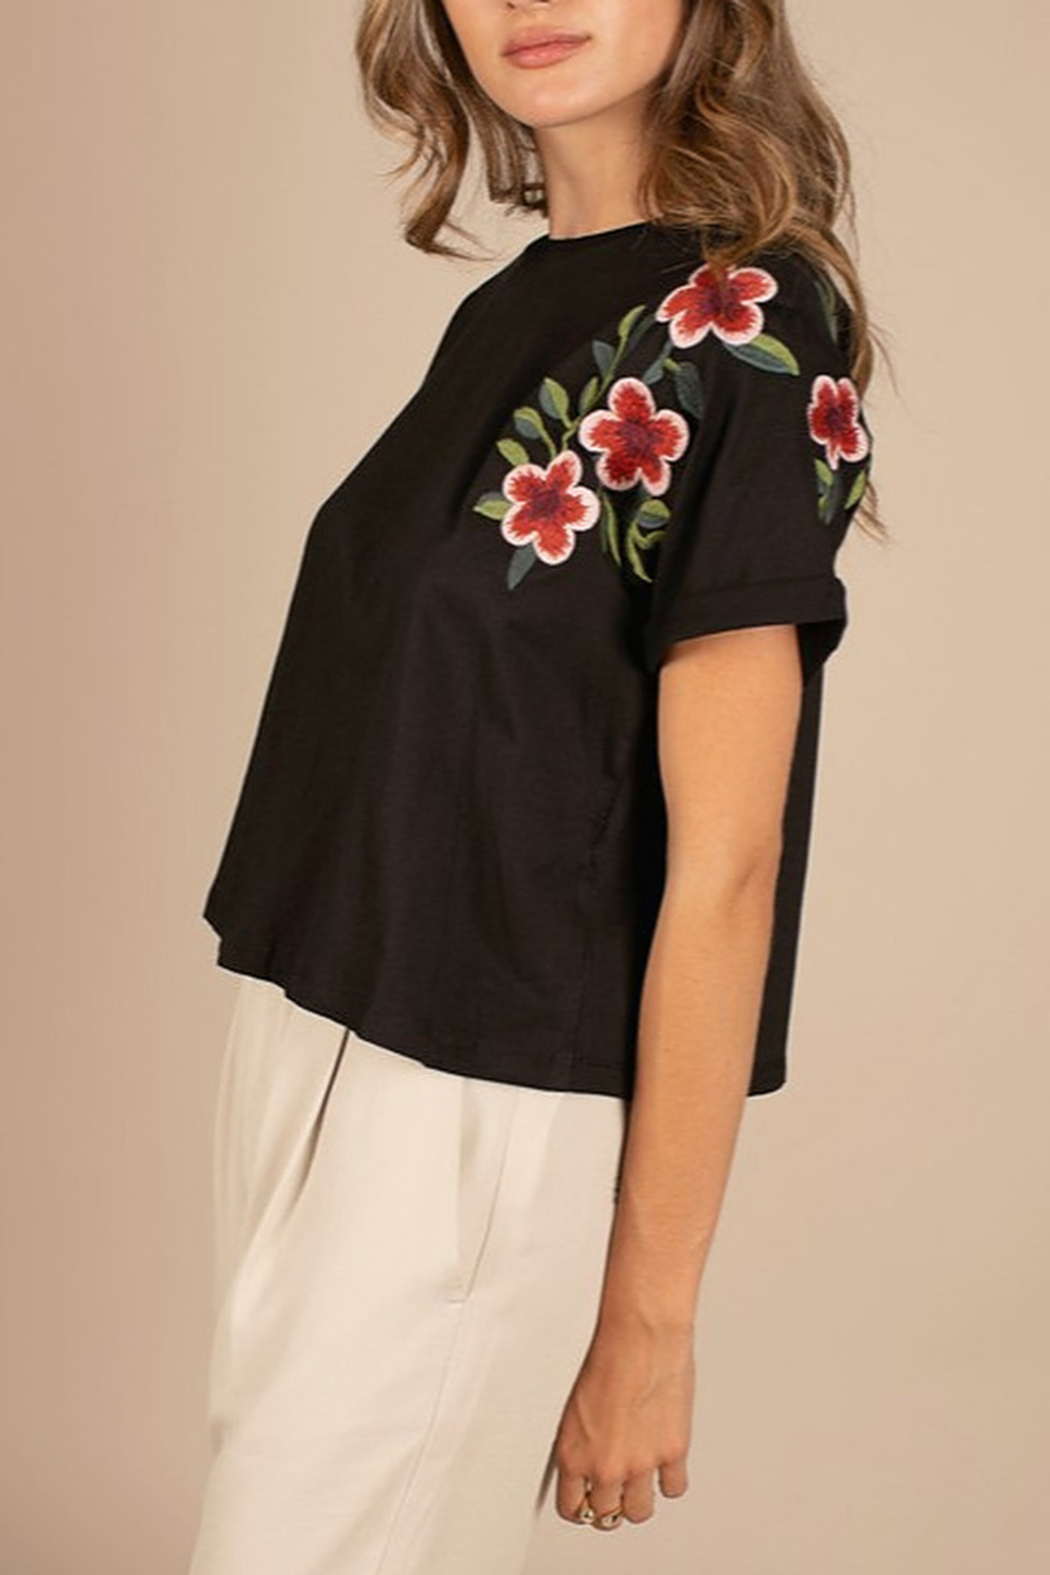 Mod Ref Embroidered Black Crop Top - Main Image